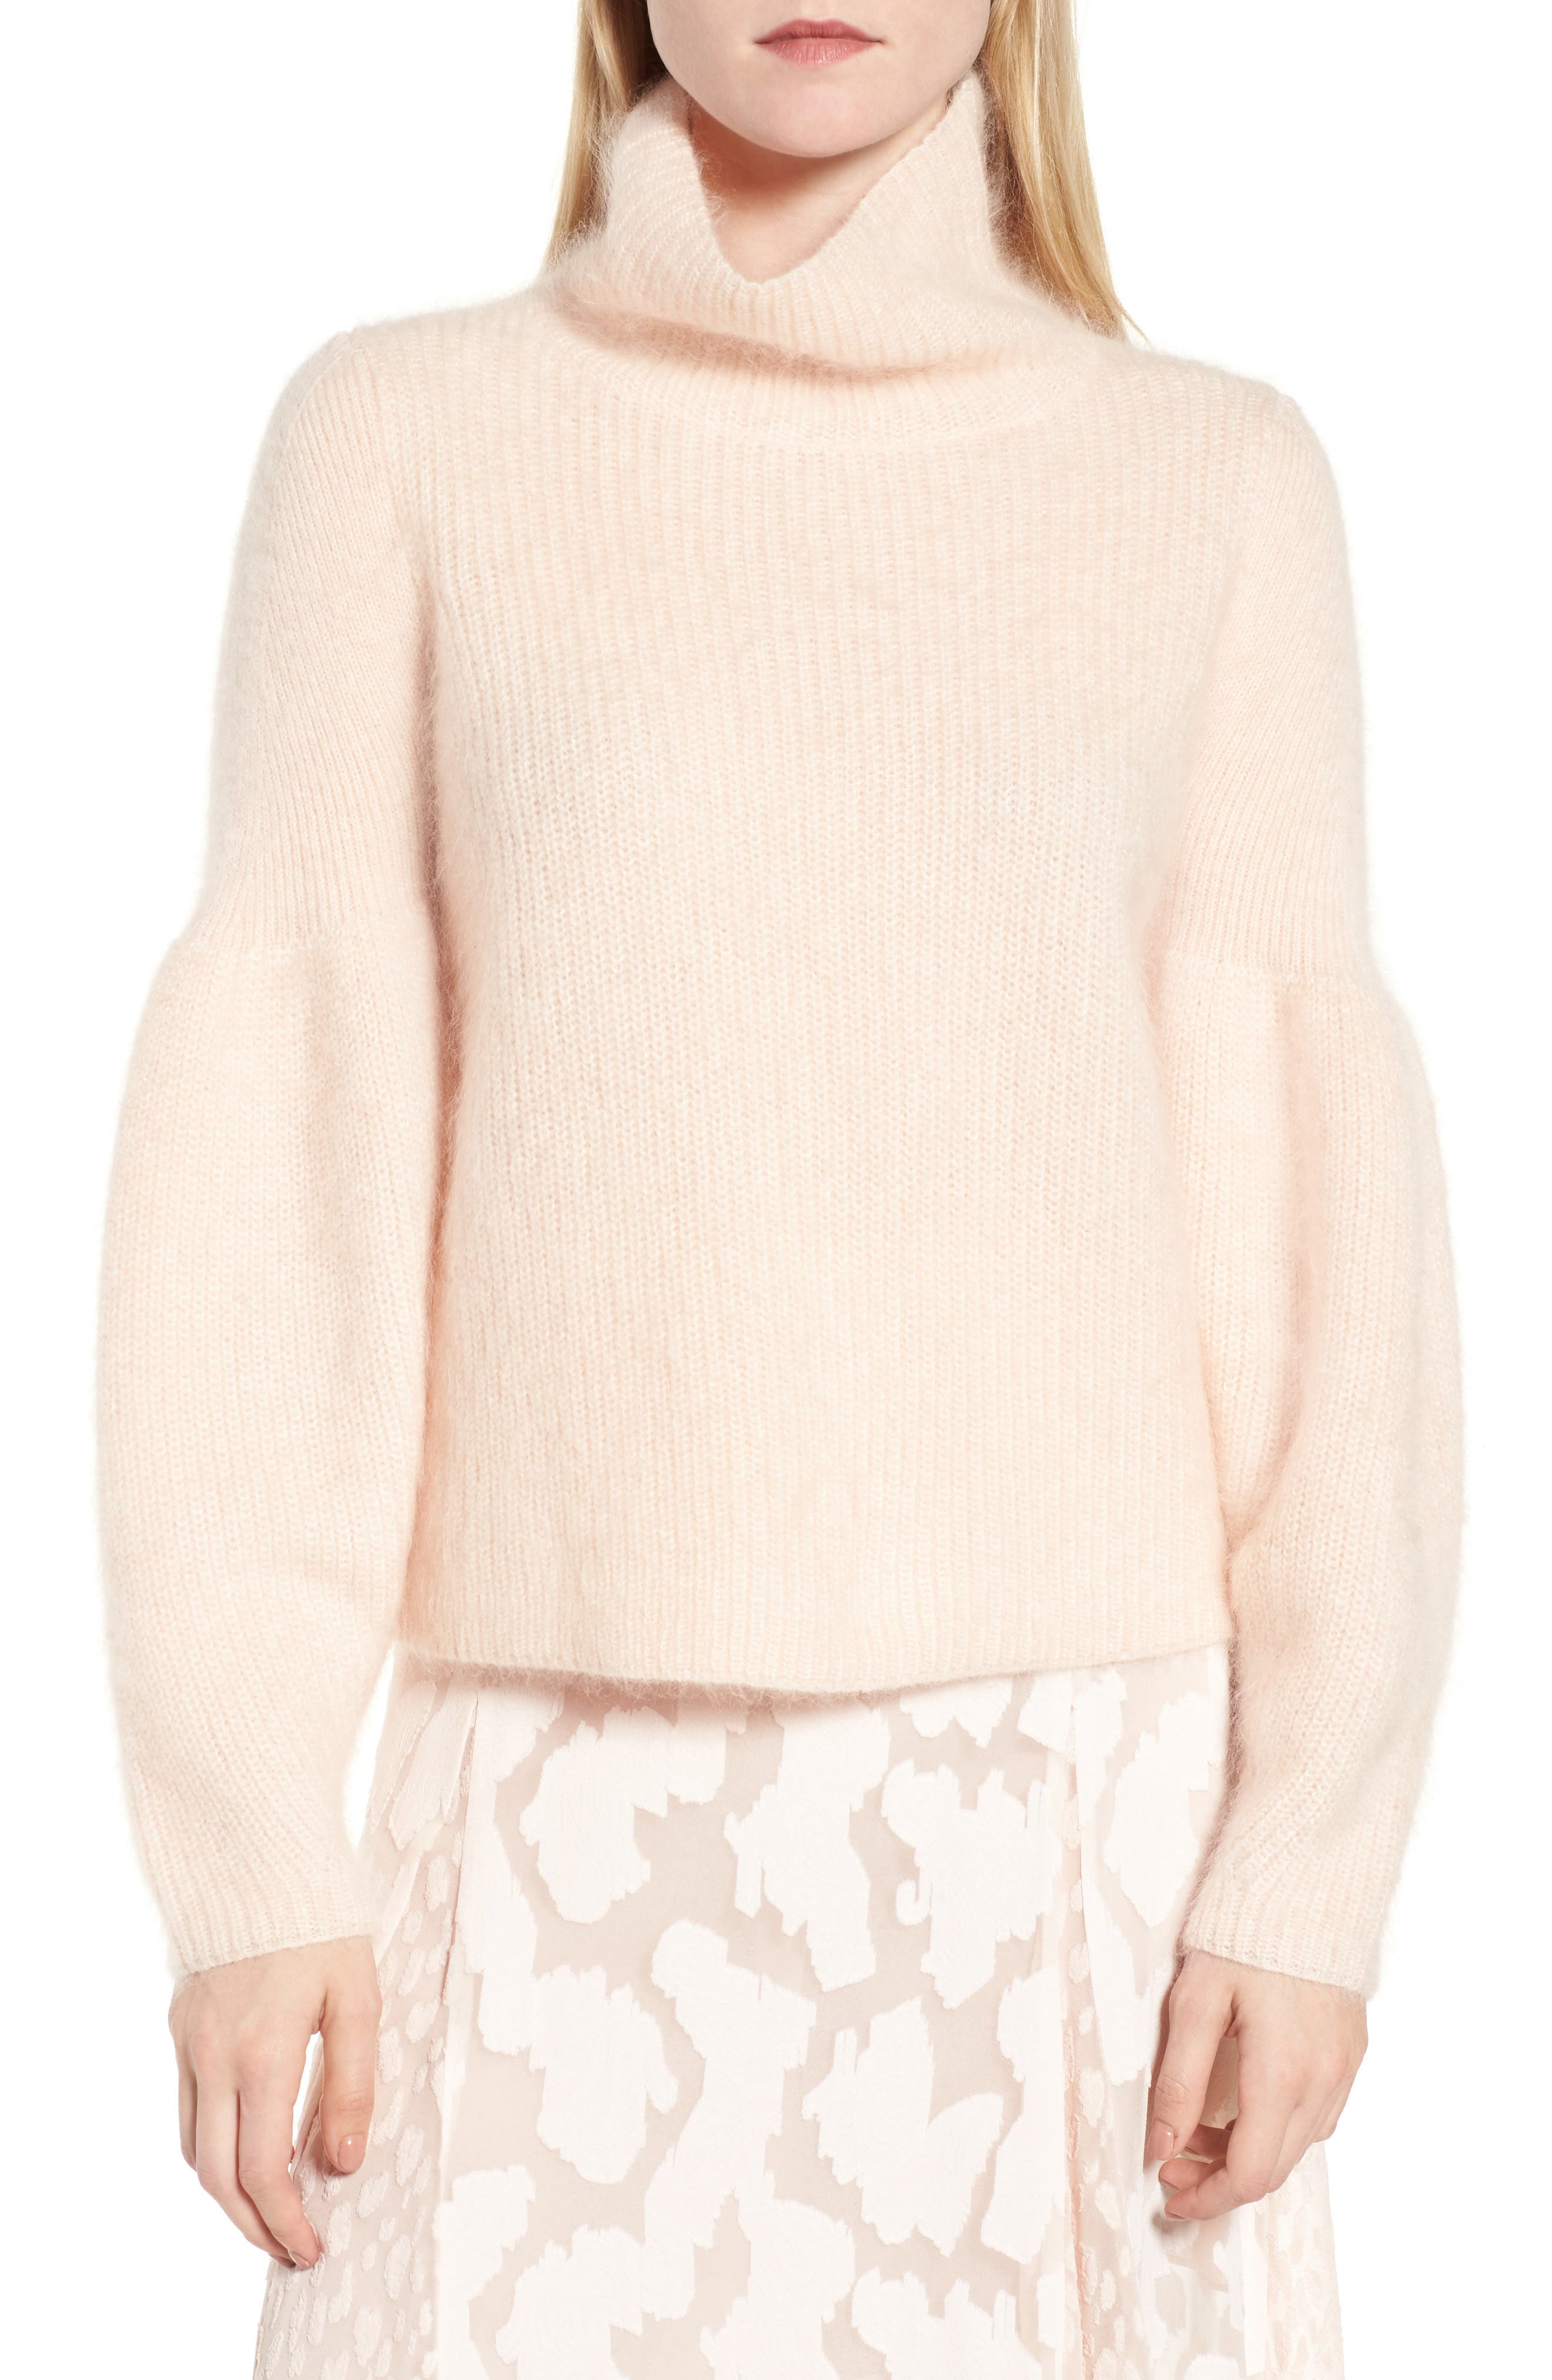 Poet Sleeve Sweater,                         Main,                         color,